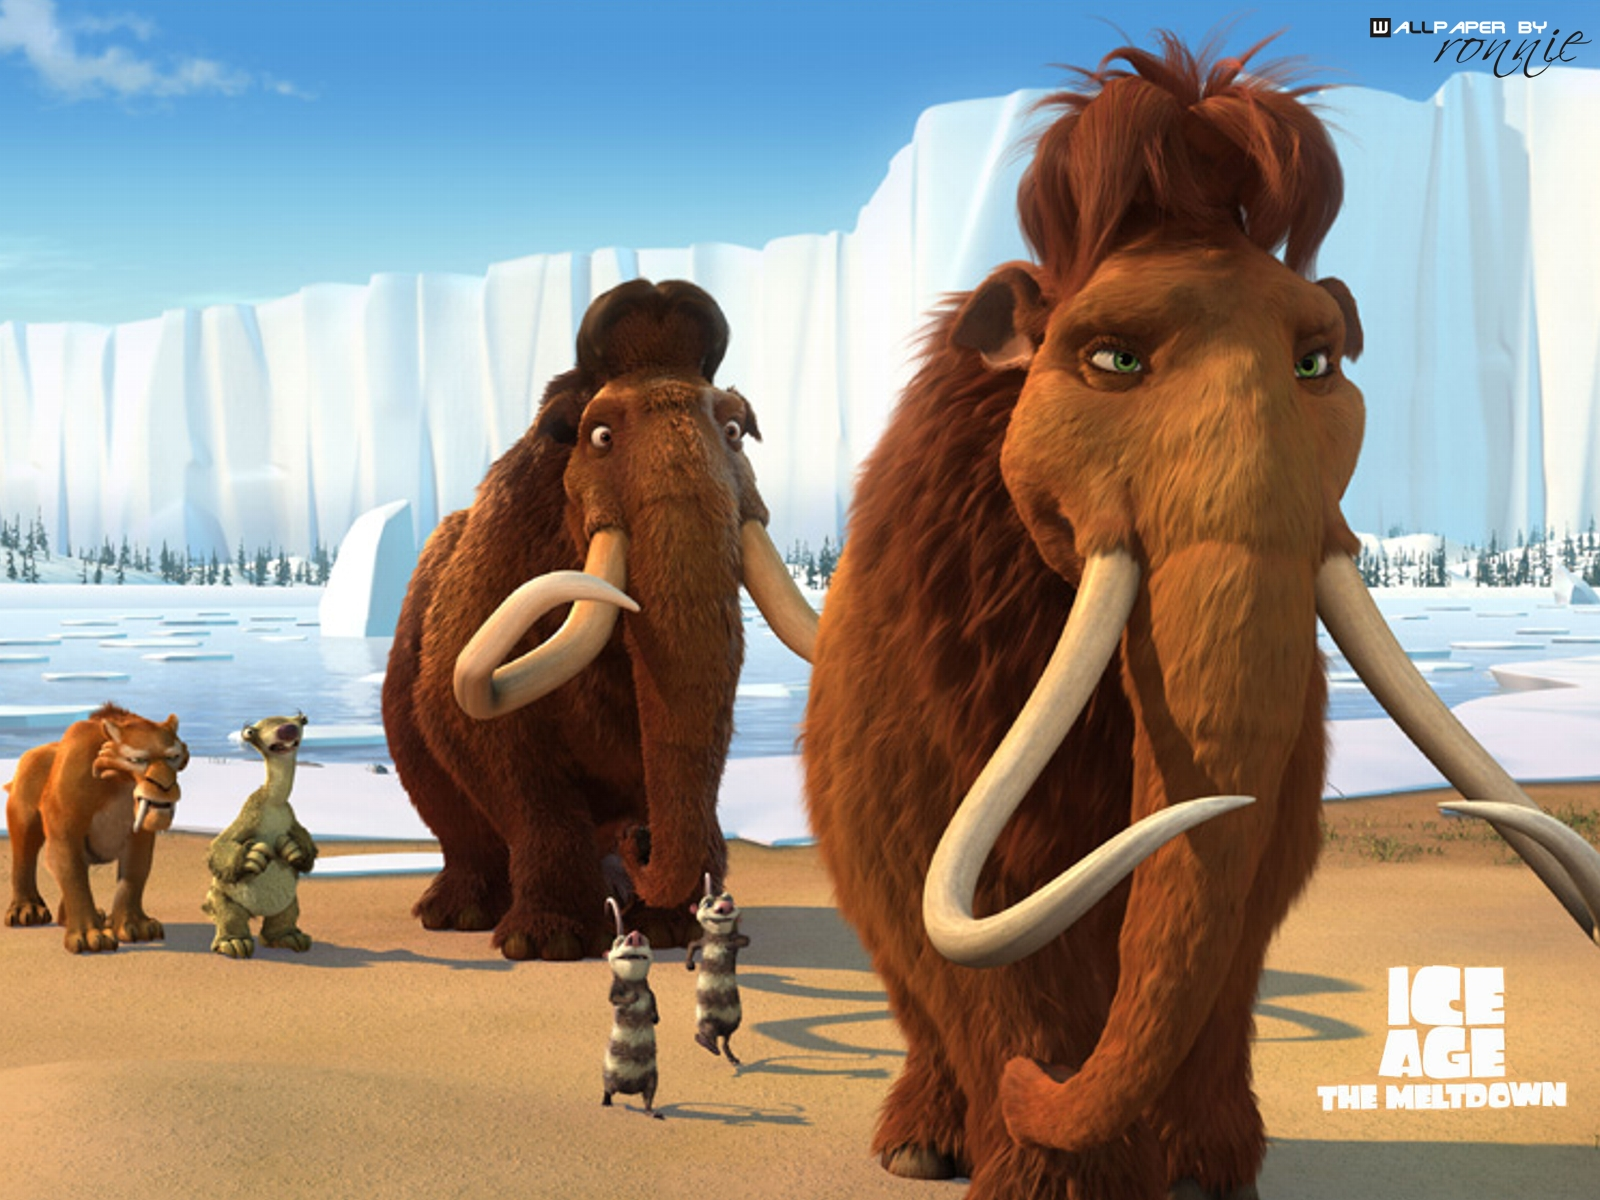 ice age | Euro Palace Casino Blog